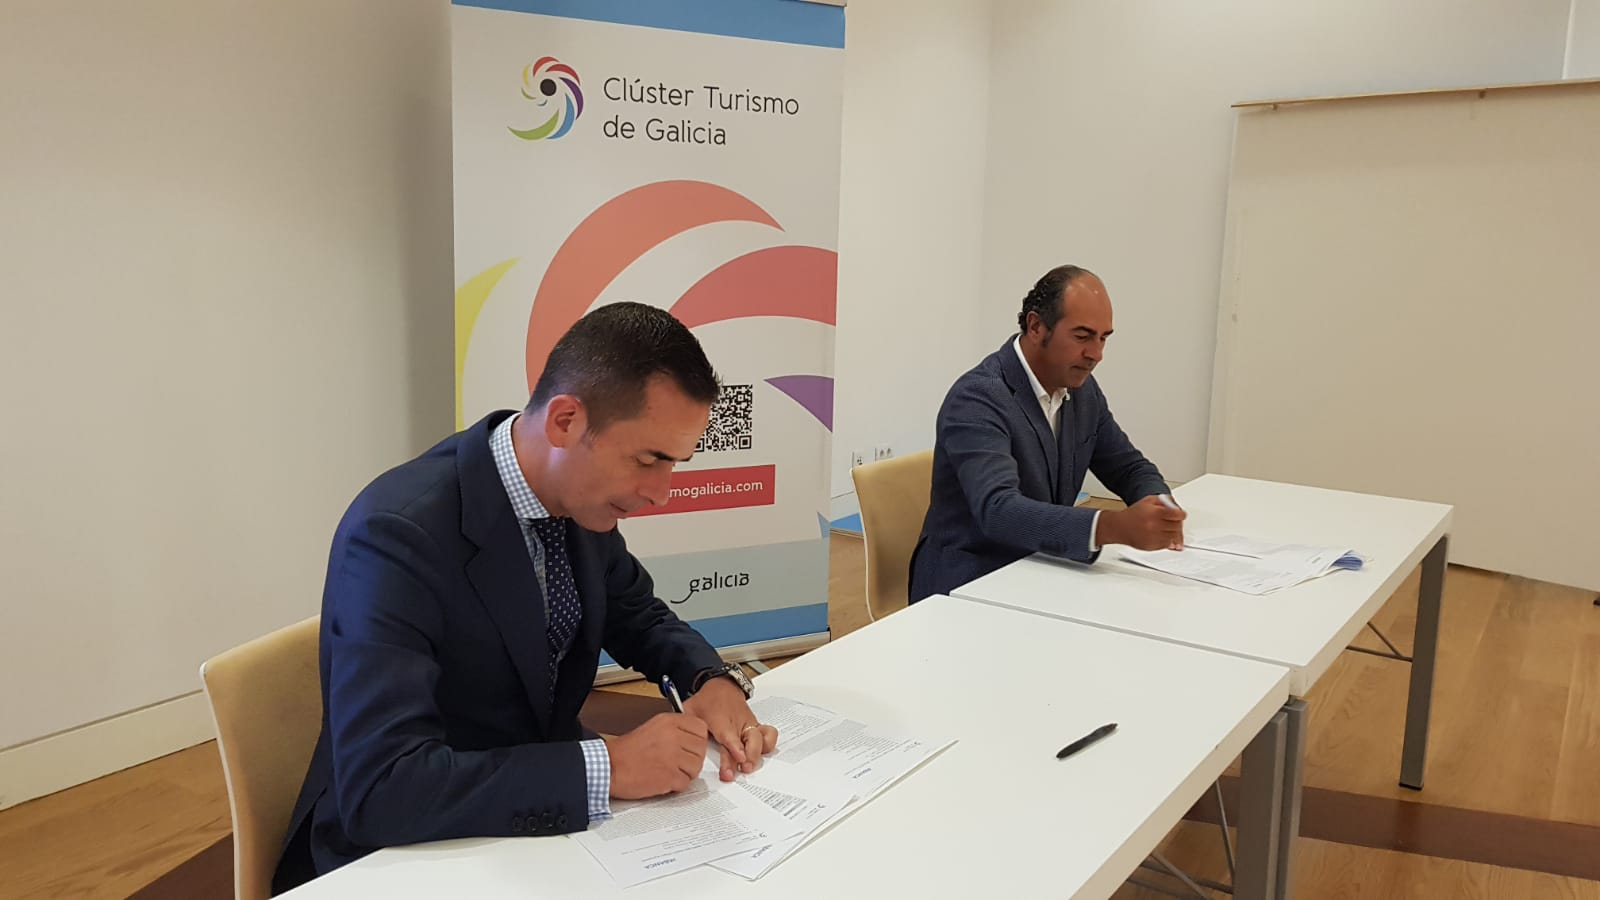 Abanca and Clúster Turismo de Galicia join forces to offer financial solutions adapted to the situation of the Galician tourism sector